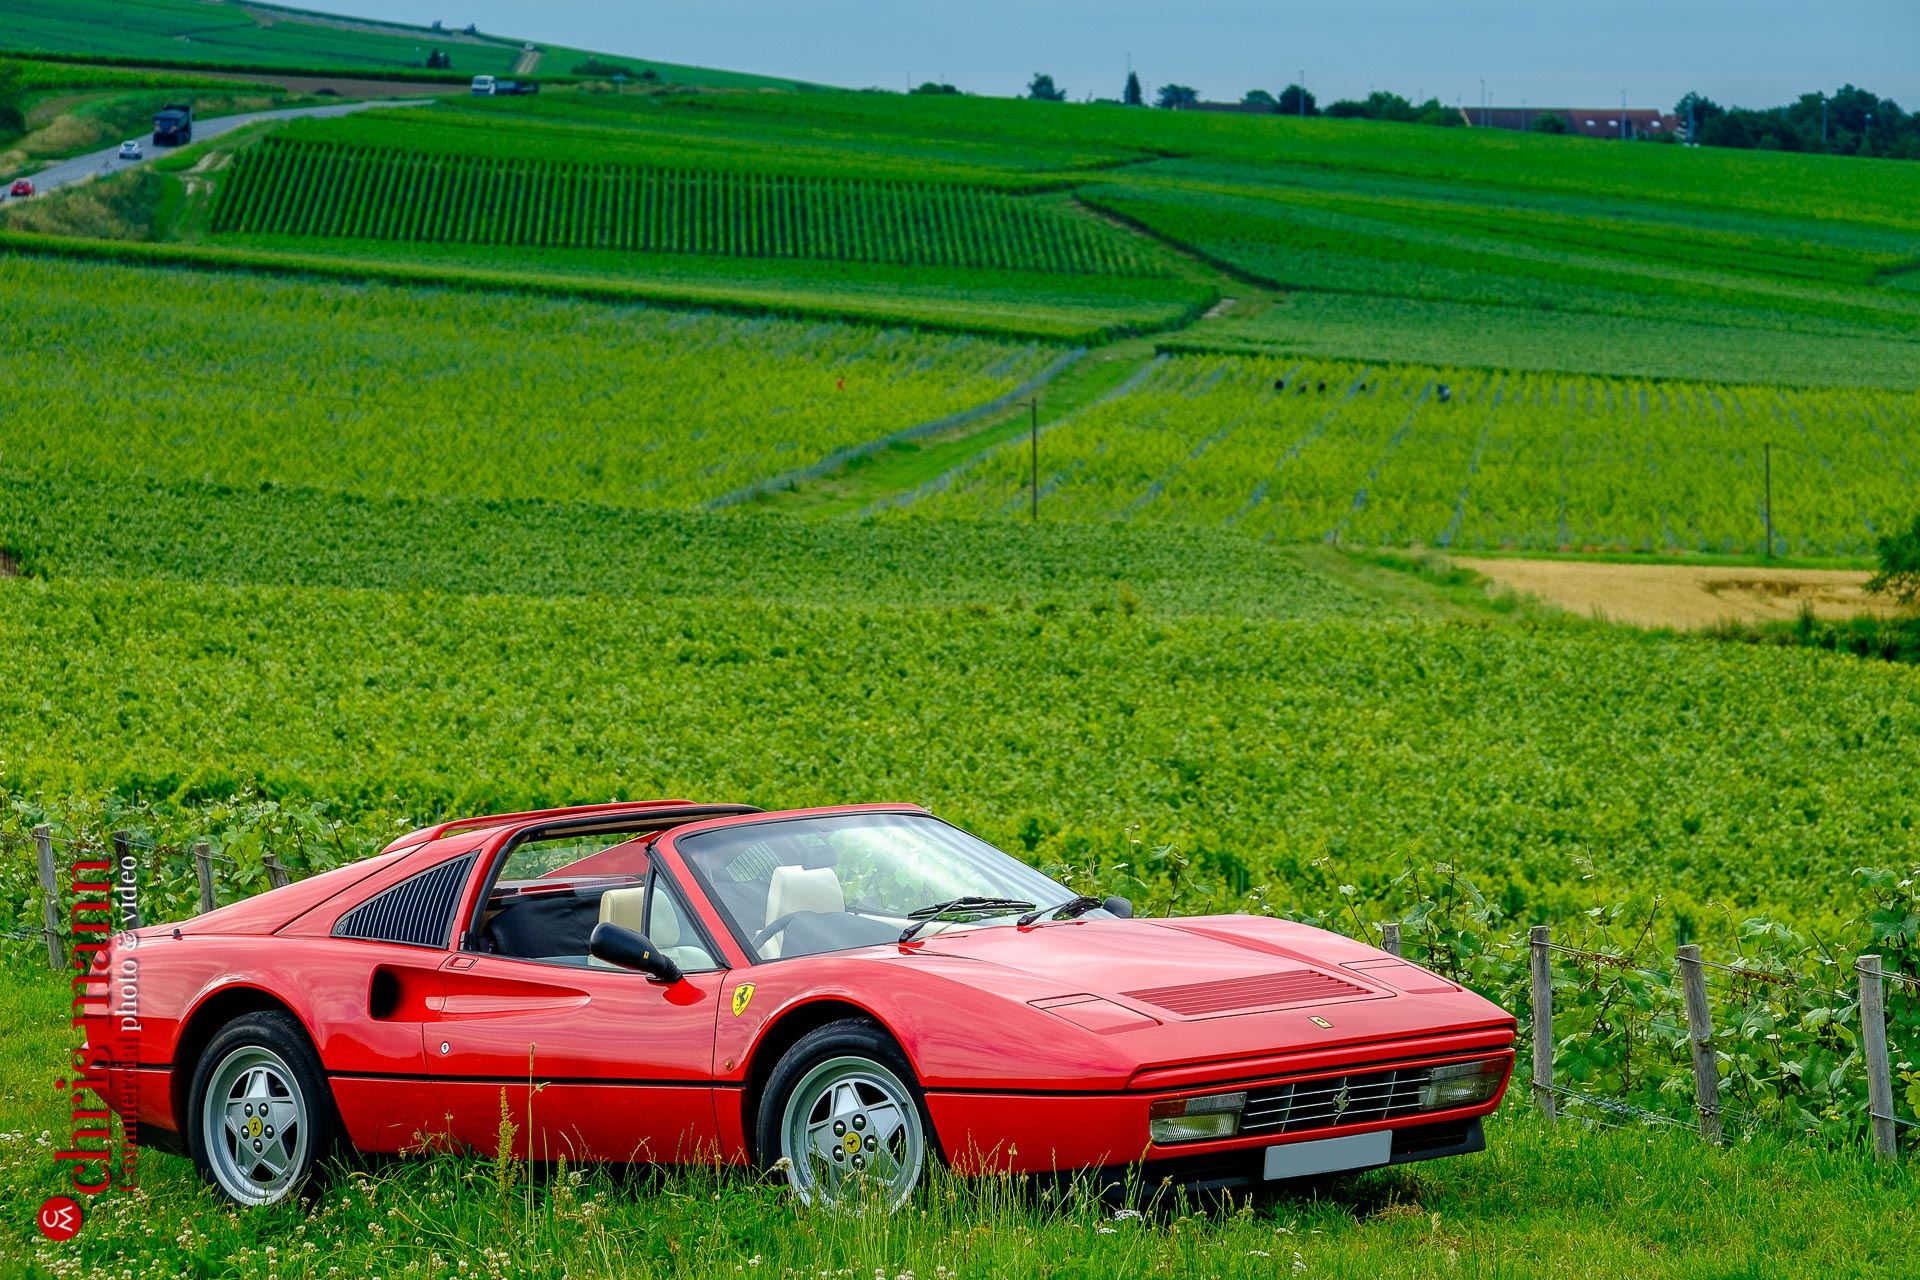 Ferrari 328 GTS Targa in Champagne vineyards near Reims Picardy France